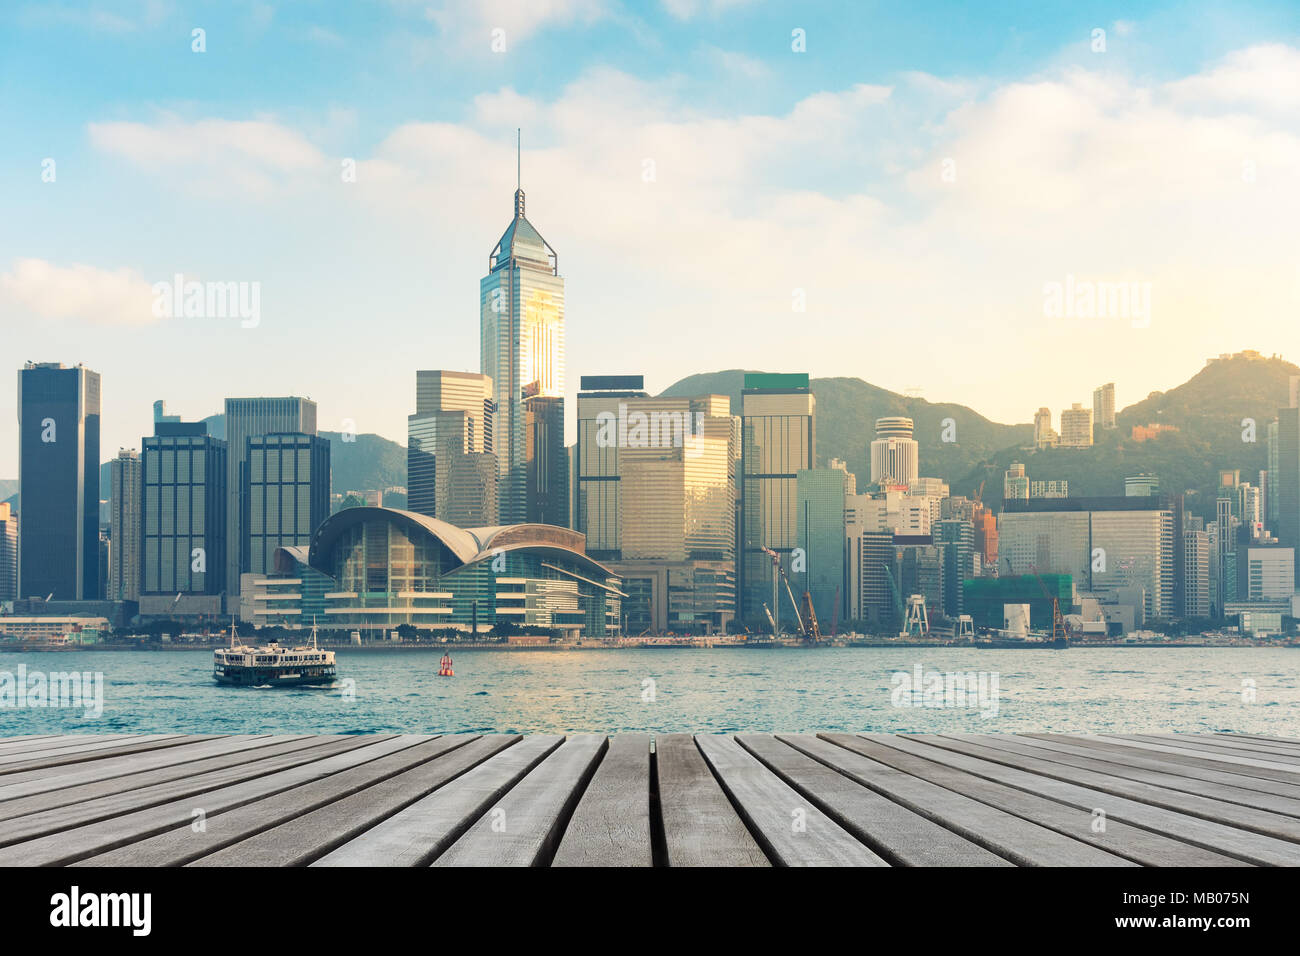 Hong Kong downtown on daylight shot. - Stock Image